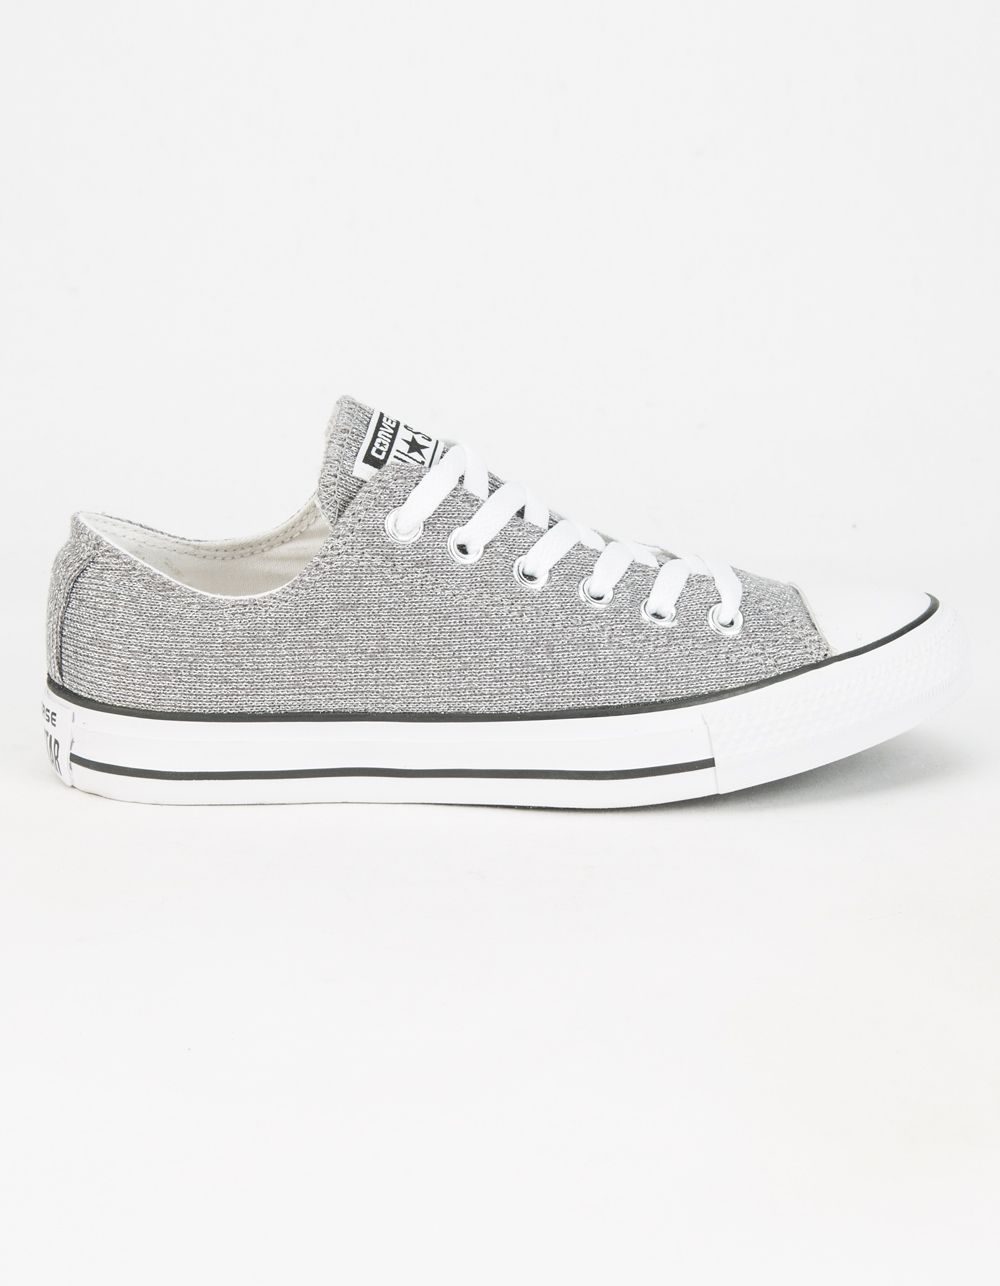 135543b774f0 Classic Chucks! Converse Chuck Taylor All Star Sparkle Knit Low shoes.  Unique sparkle knit canvas upper with the traditional vulcanized rubber  outsole.